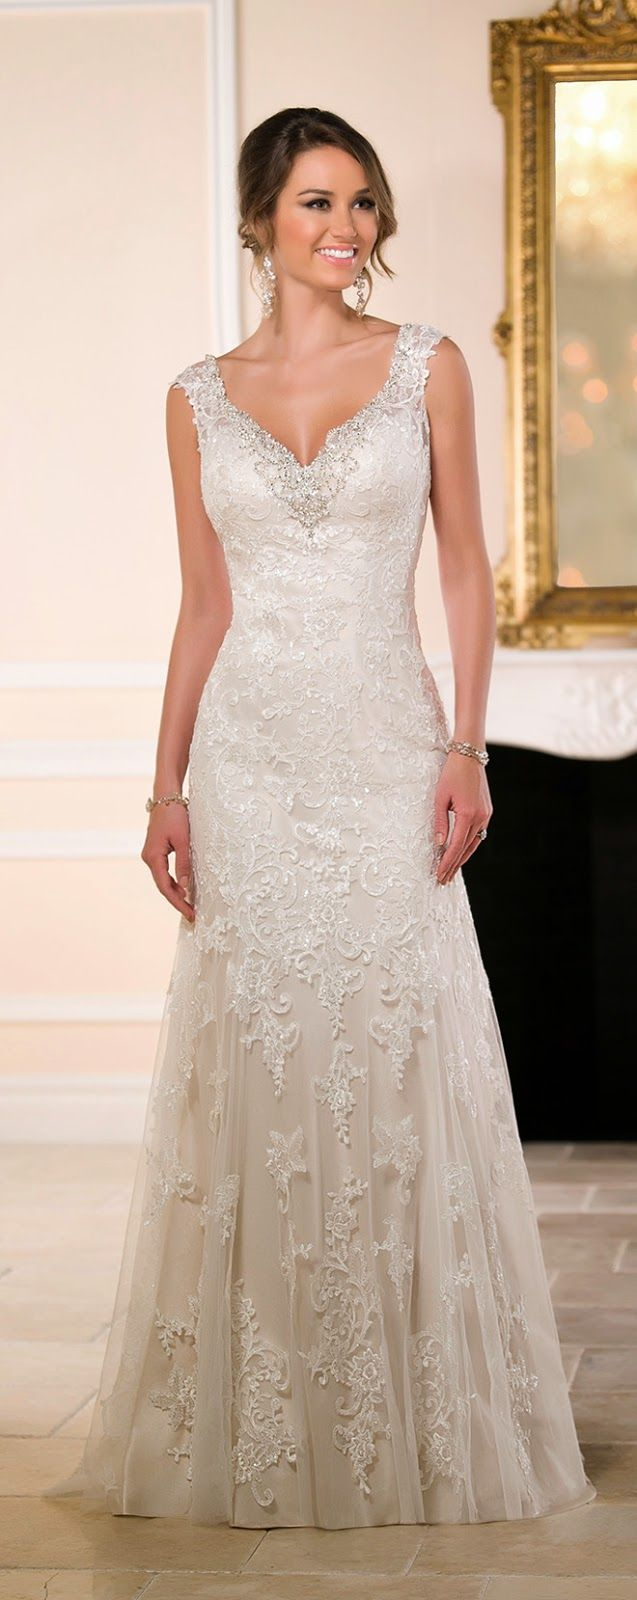 Stella York Fall 2015 Bridal Collection : Special Preview - Belle The Magazine